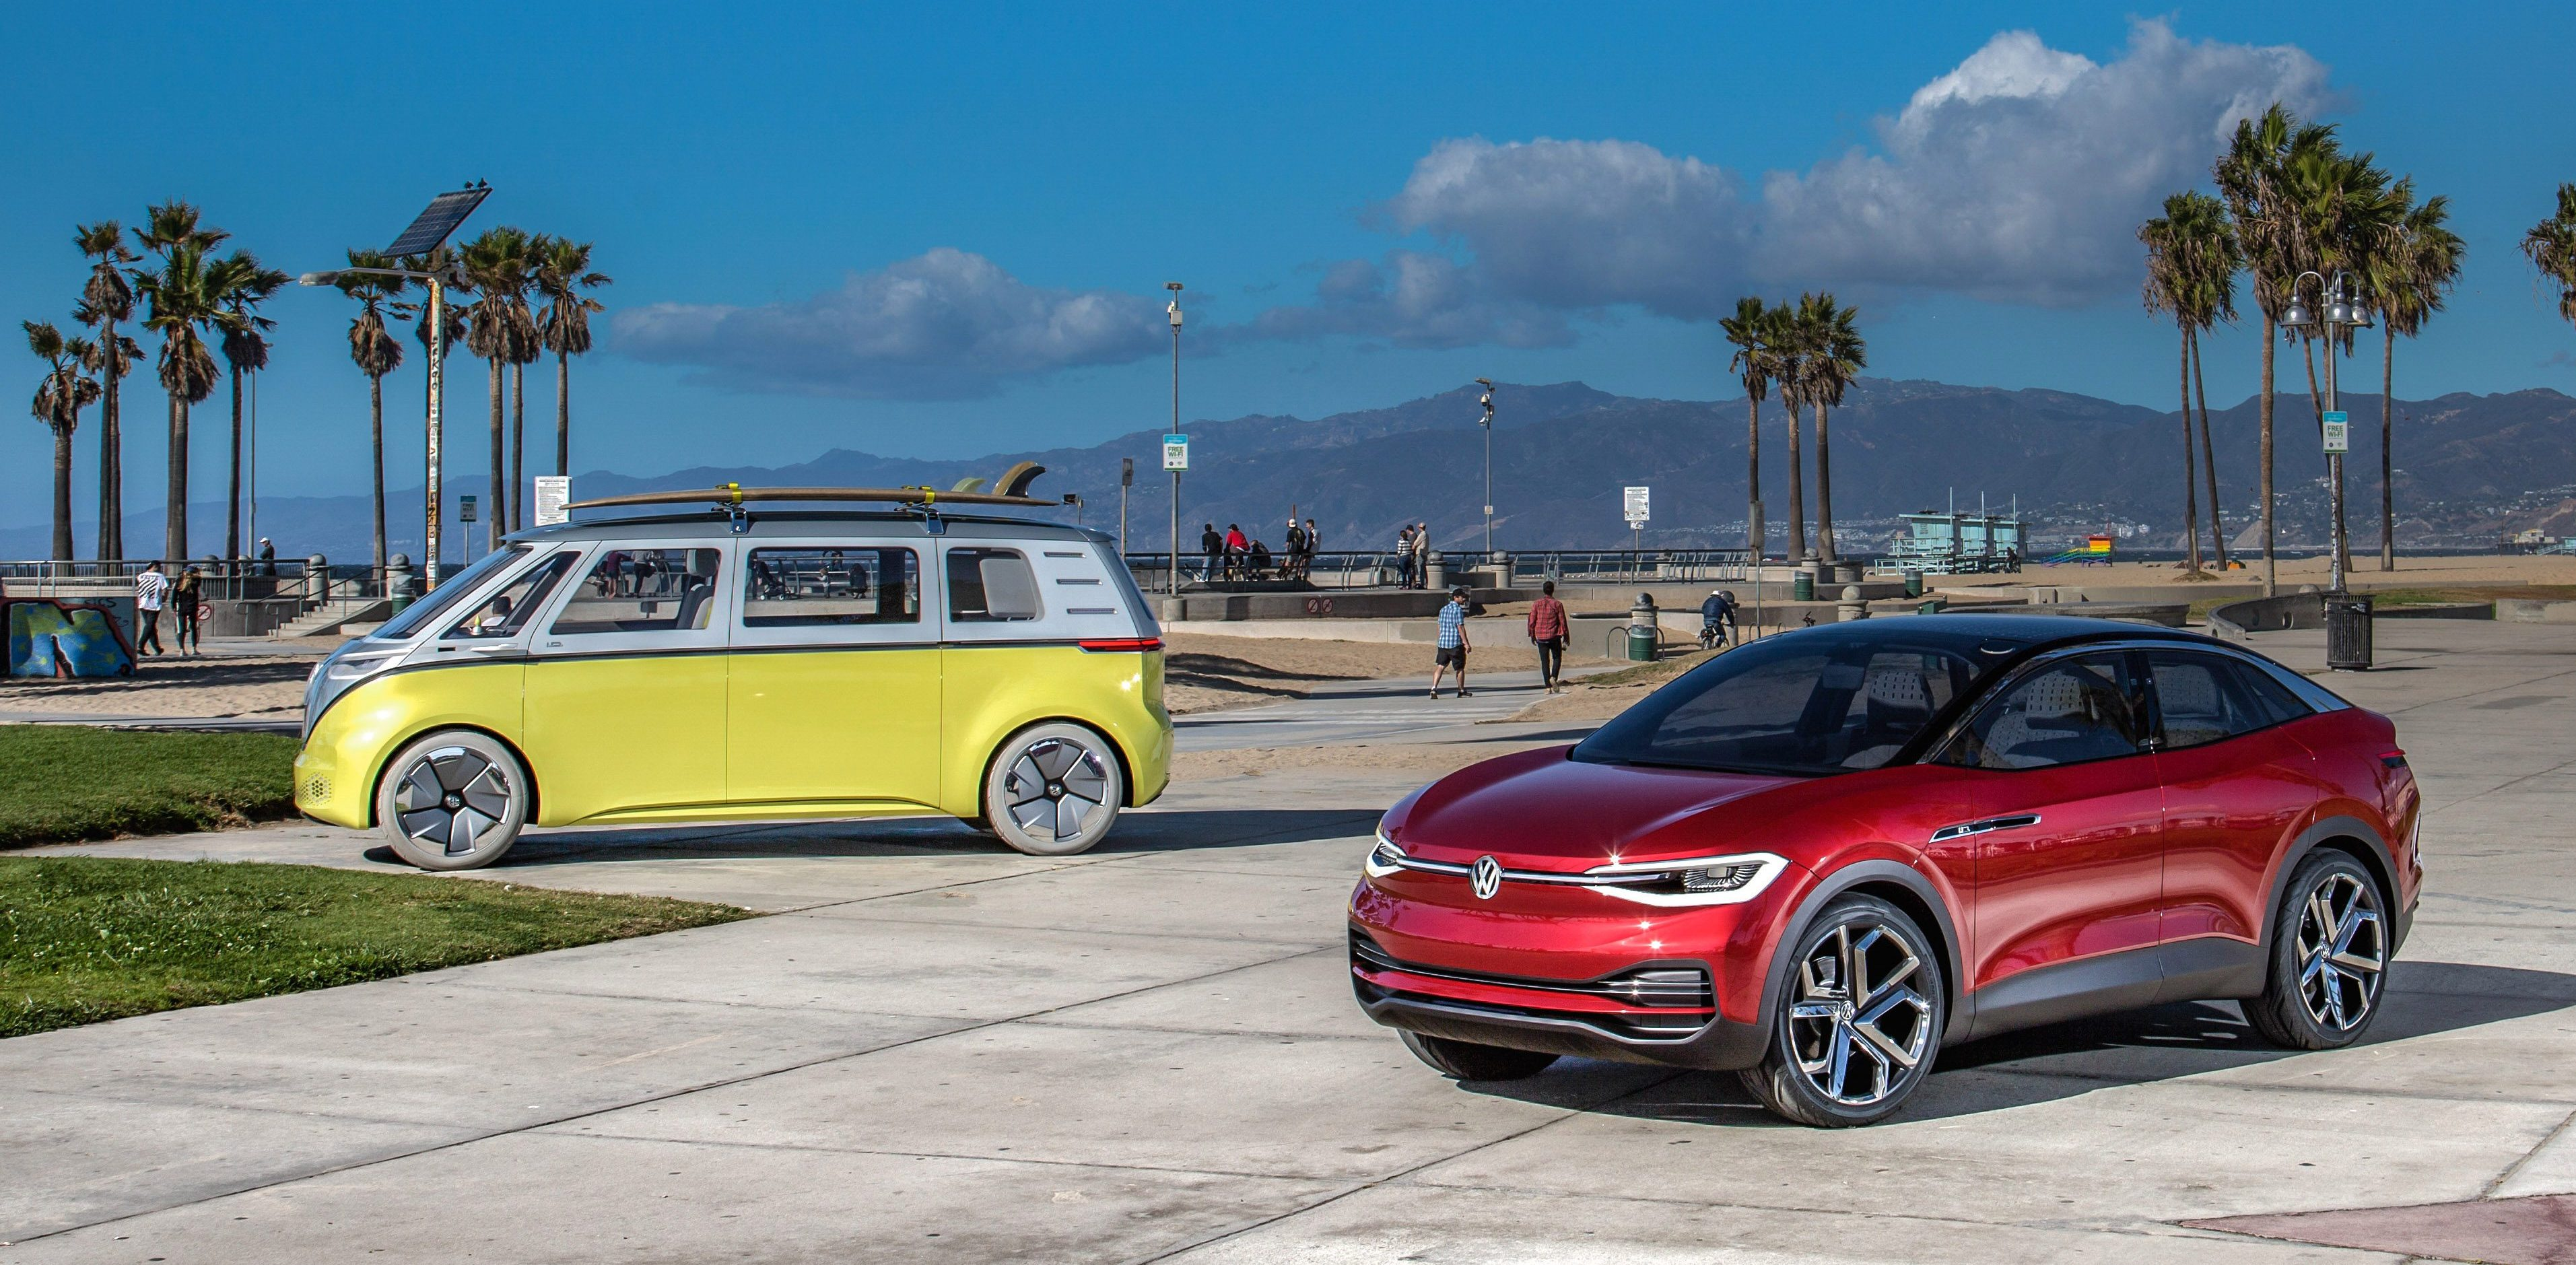 Vw Plans To Produce Its All Electric Microbus And Crossover In The Us